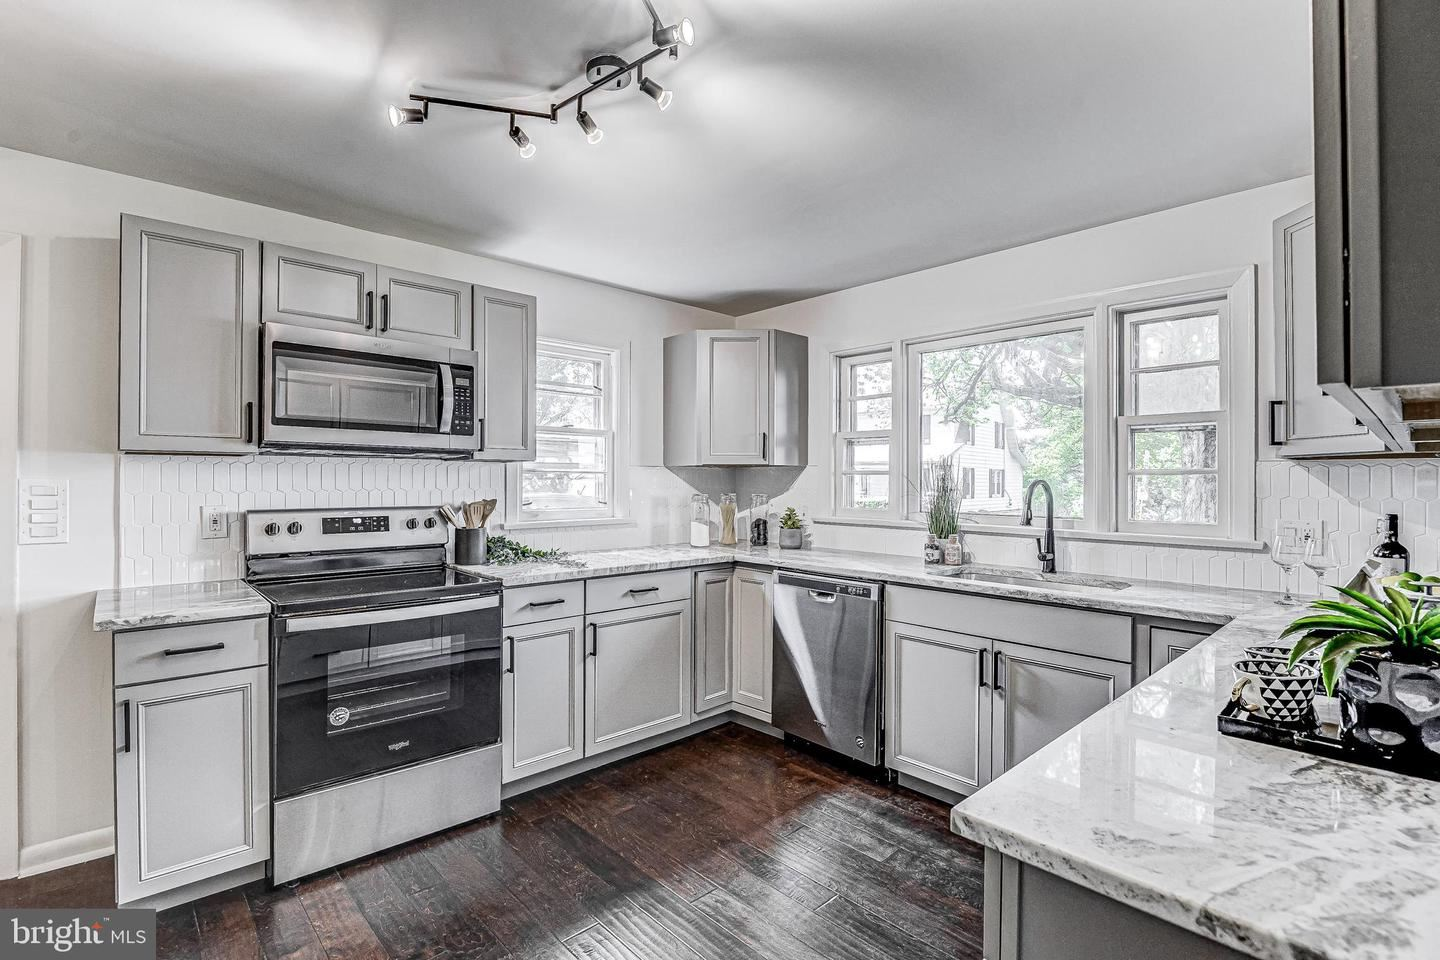 75 S COLONIAL AVE, Westminster, MD 21157 - MLS#: MDCR204352